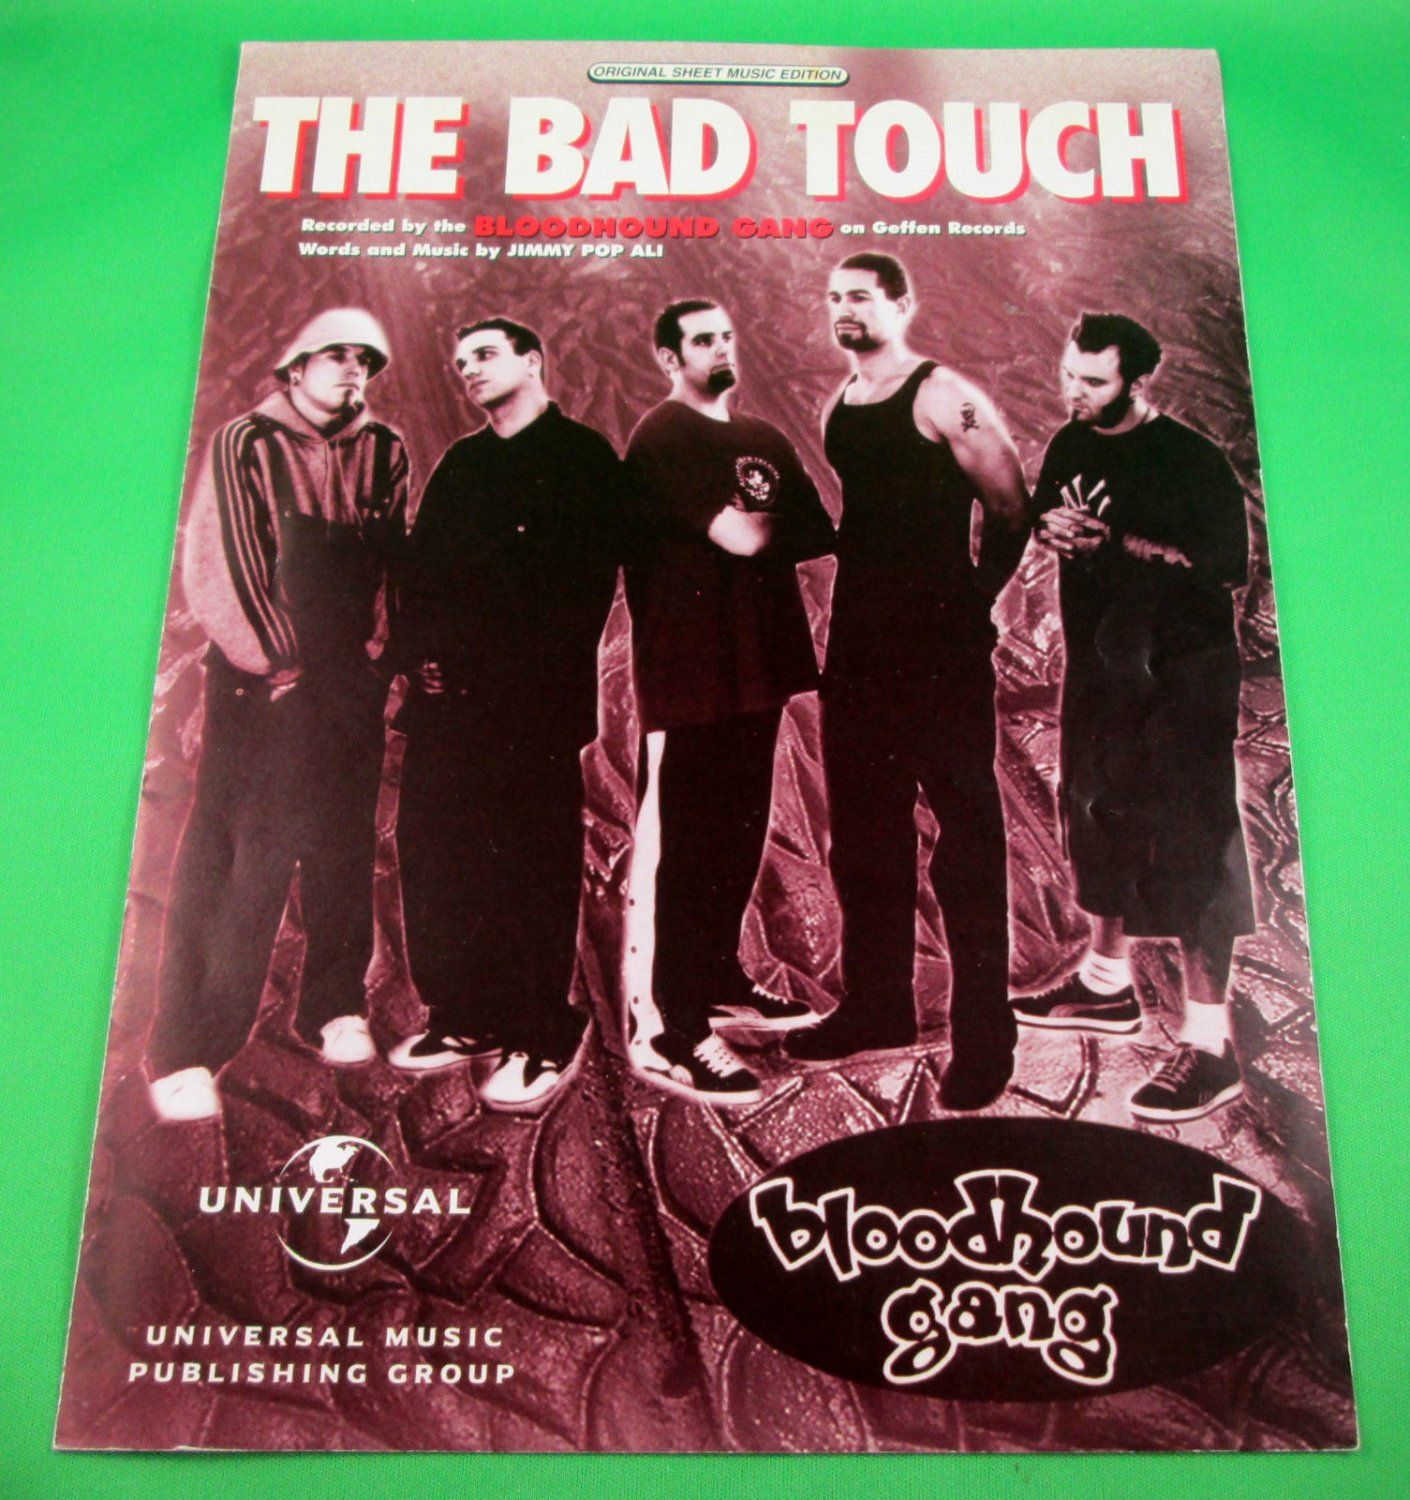 THE BAD TOUCH Original Sheet Music Edition BLOODHOUND GANG © 1999